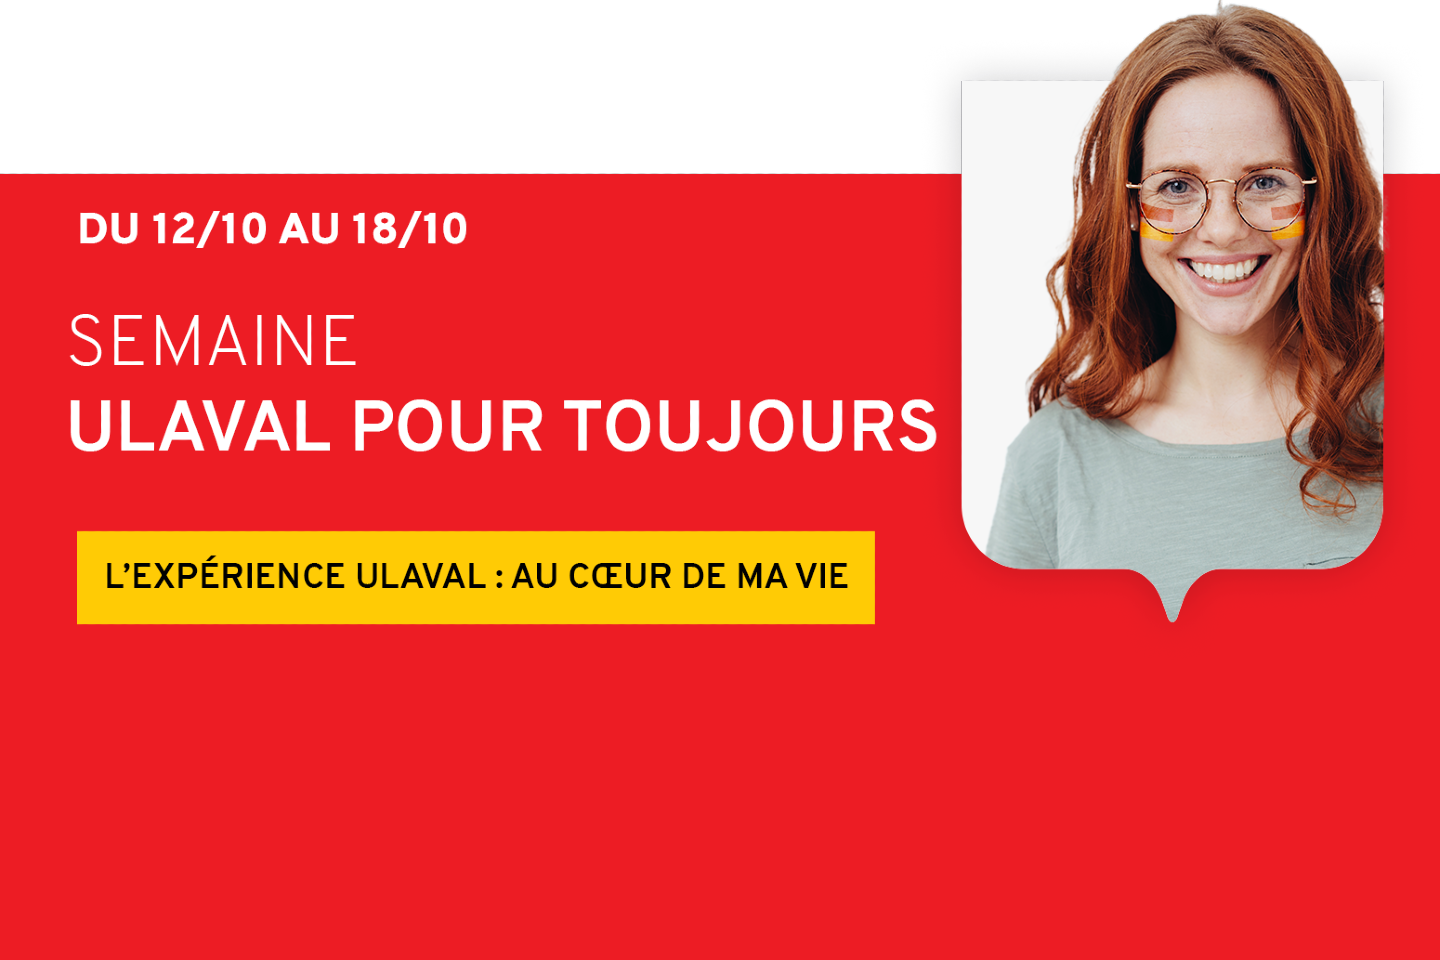 Semaine ULaval pour toujours